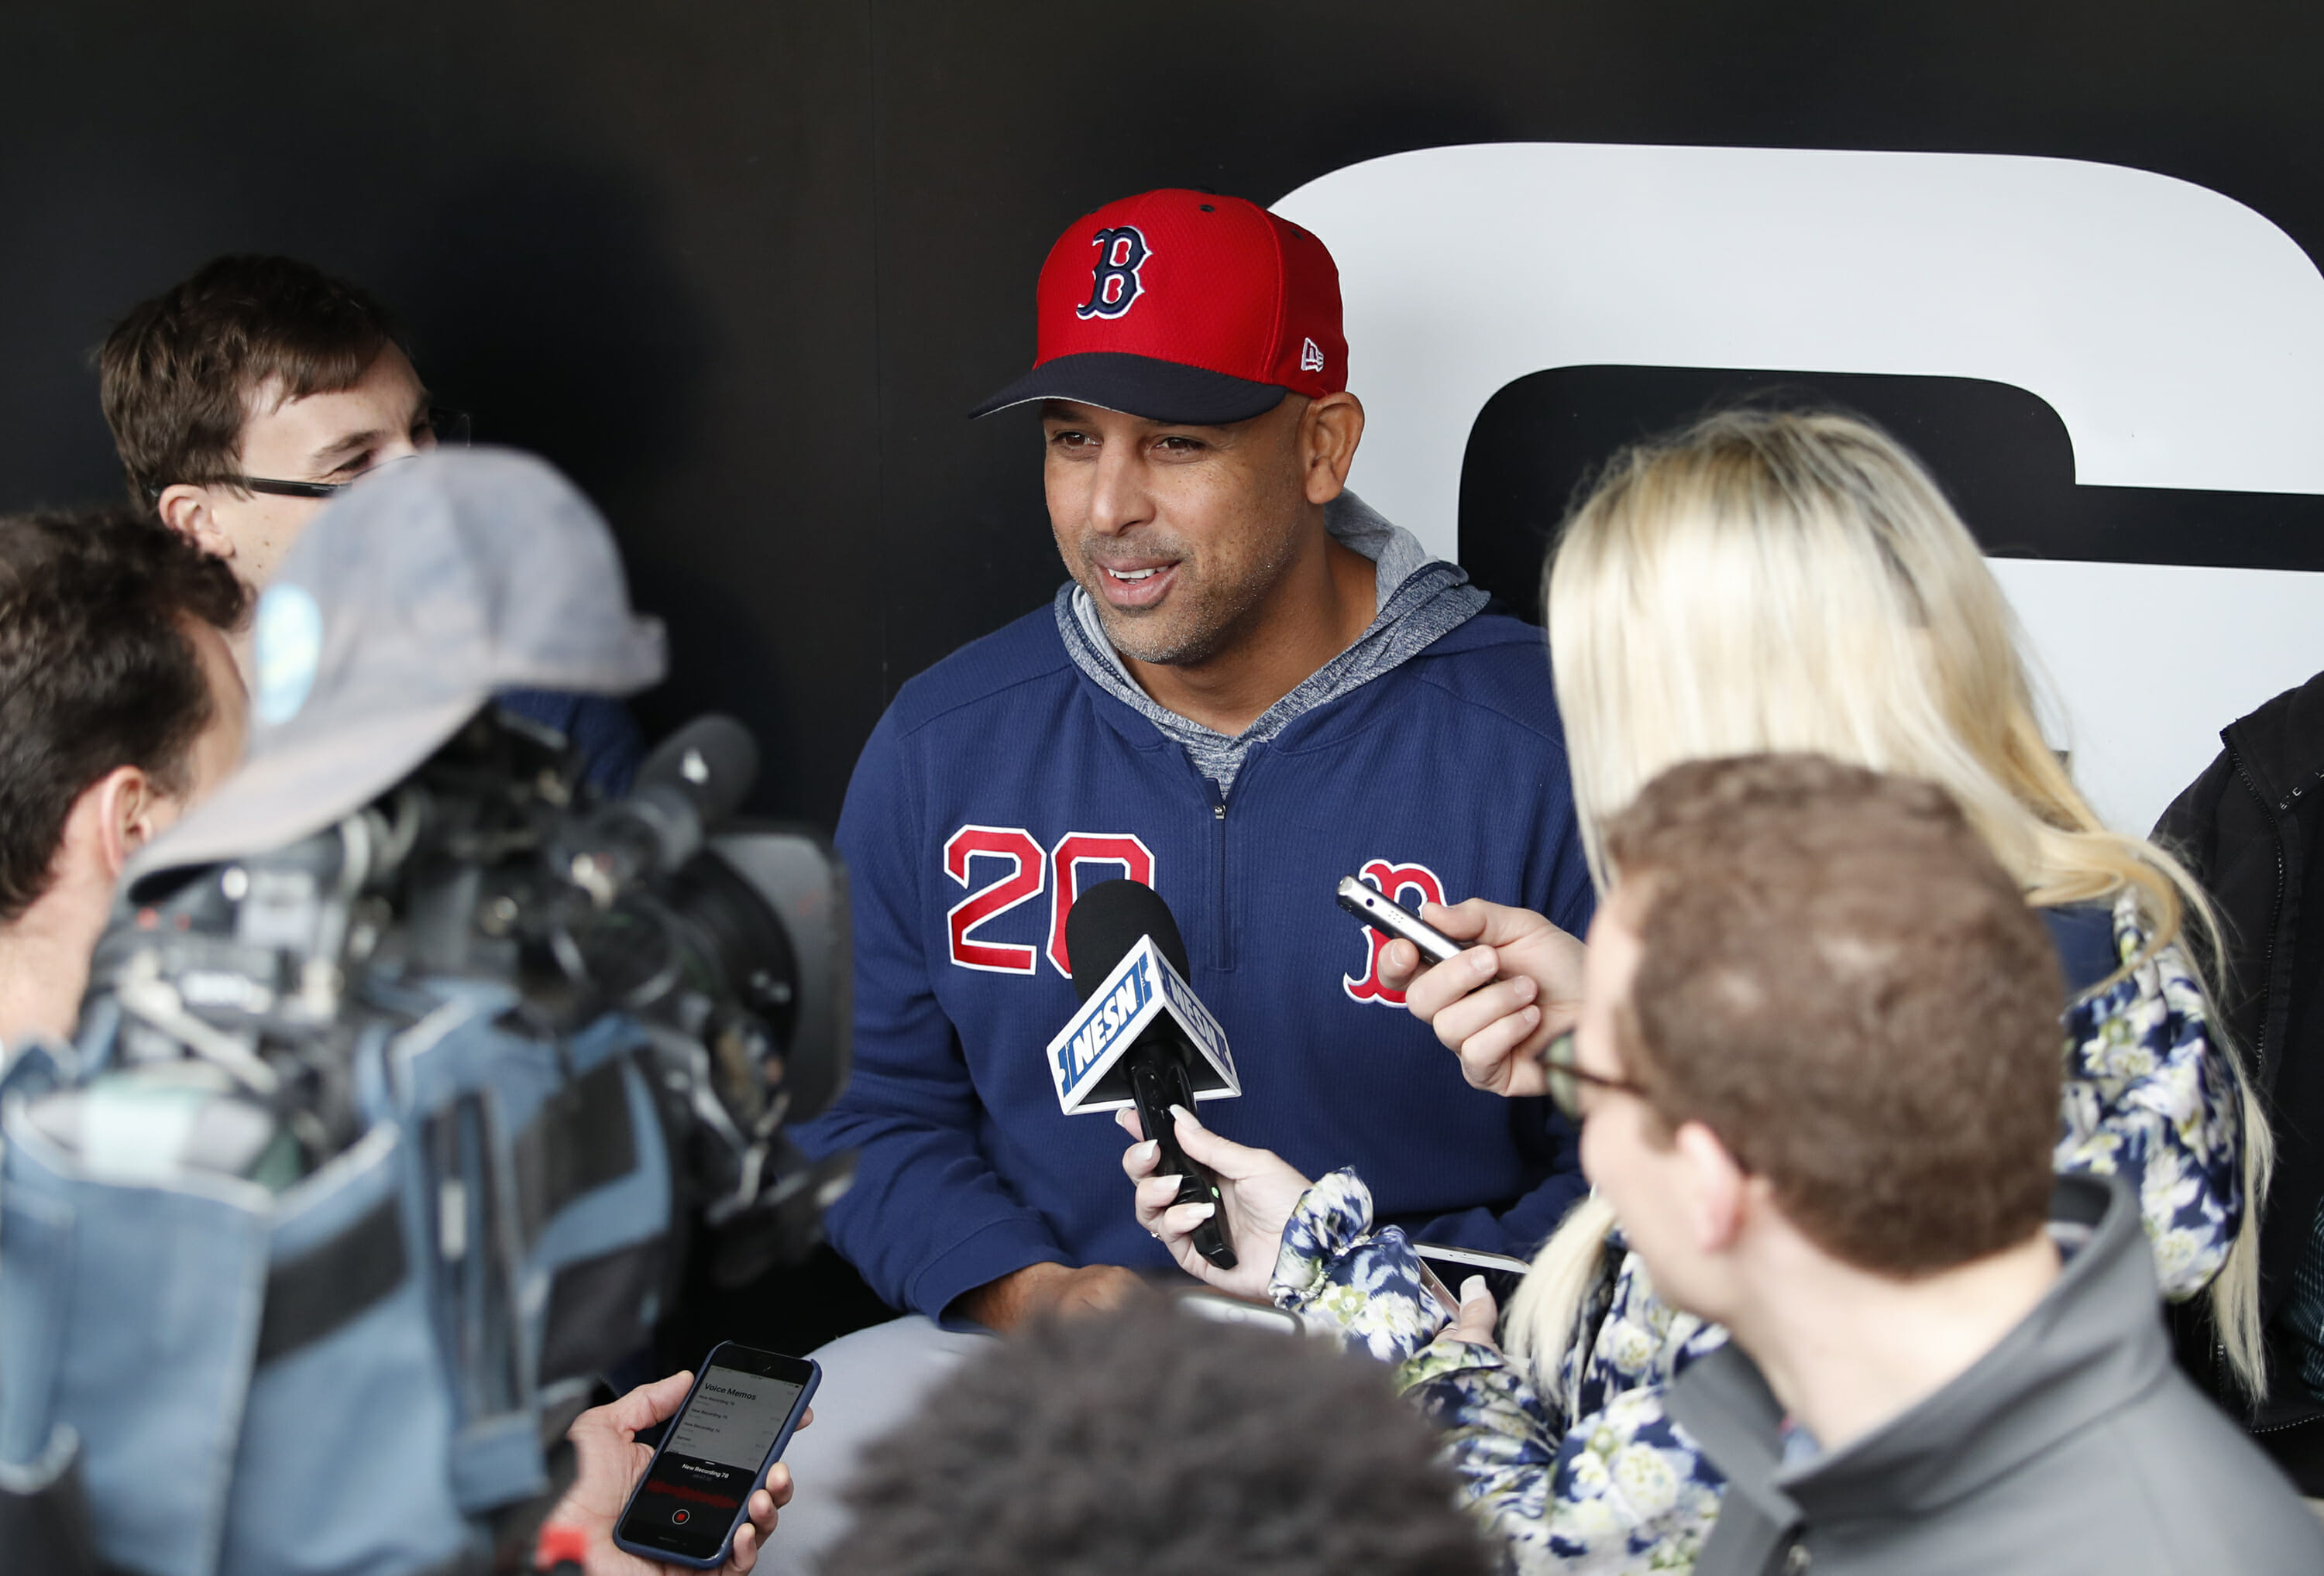 Boston Red Sox manager Alex Cora talks with the media before a game against the Chicago White Sox on May 3, 2019.